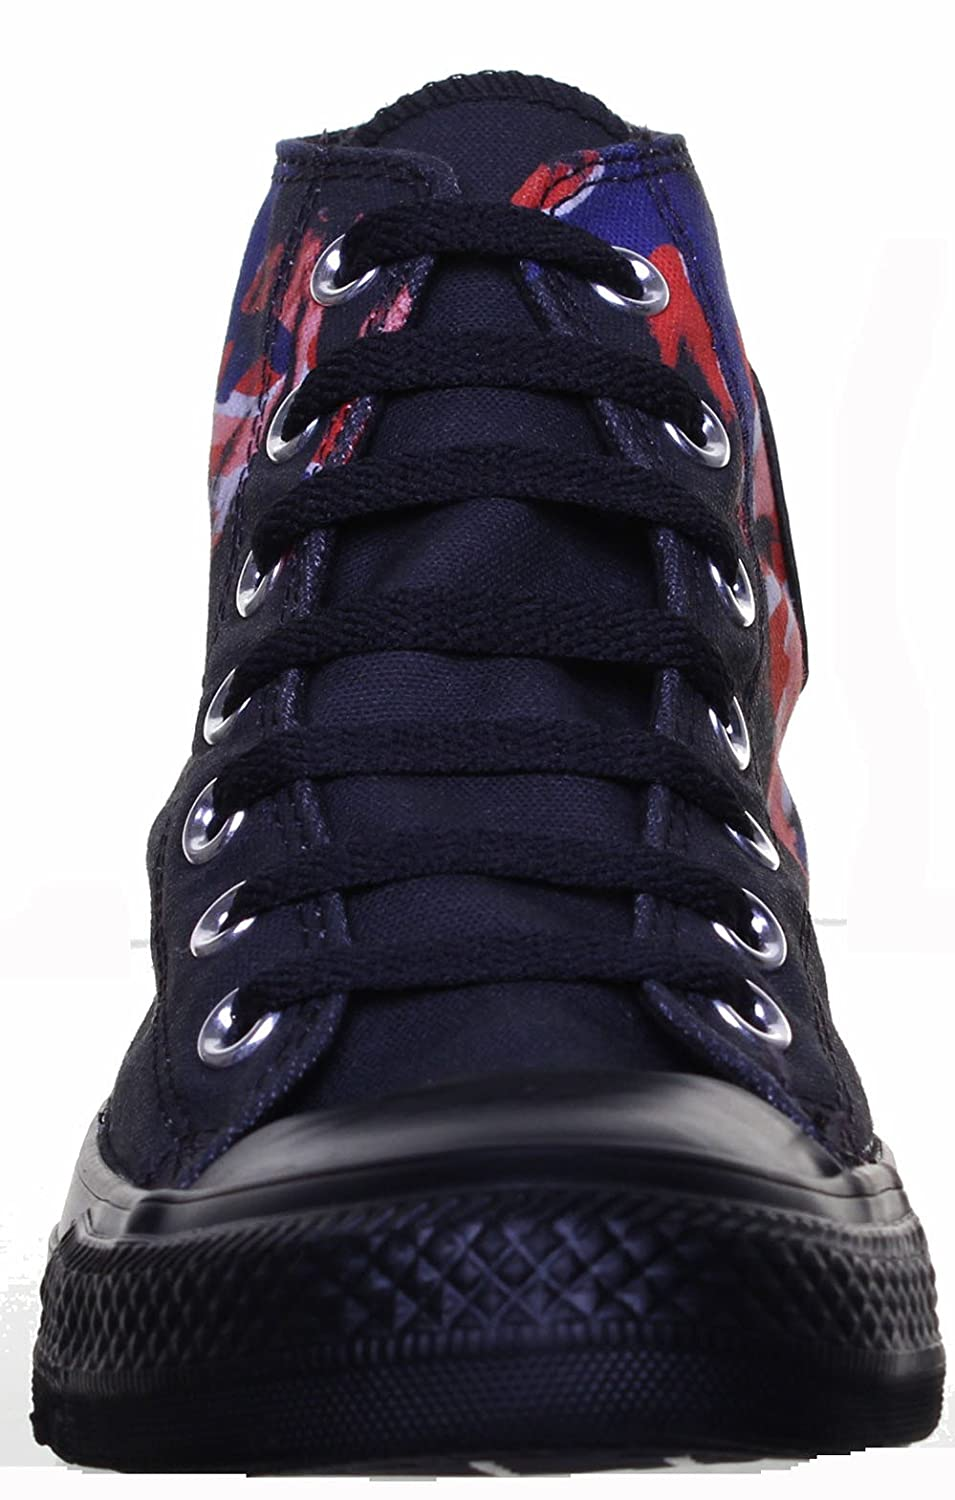 98d822a0b07 Converse 149486 Andy Warhol Canvas Trainers UK Size  Amazon.co.uk  Shoes    Bags